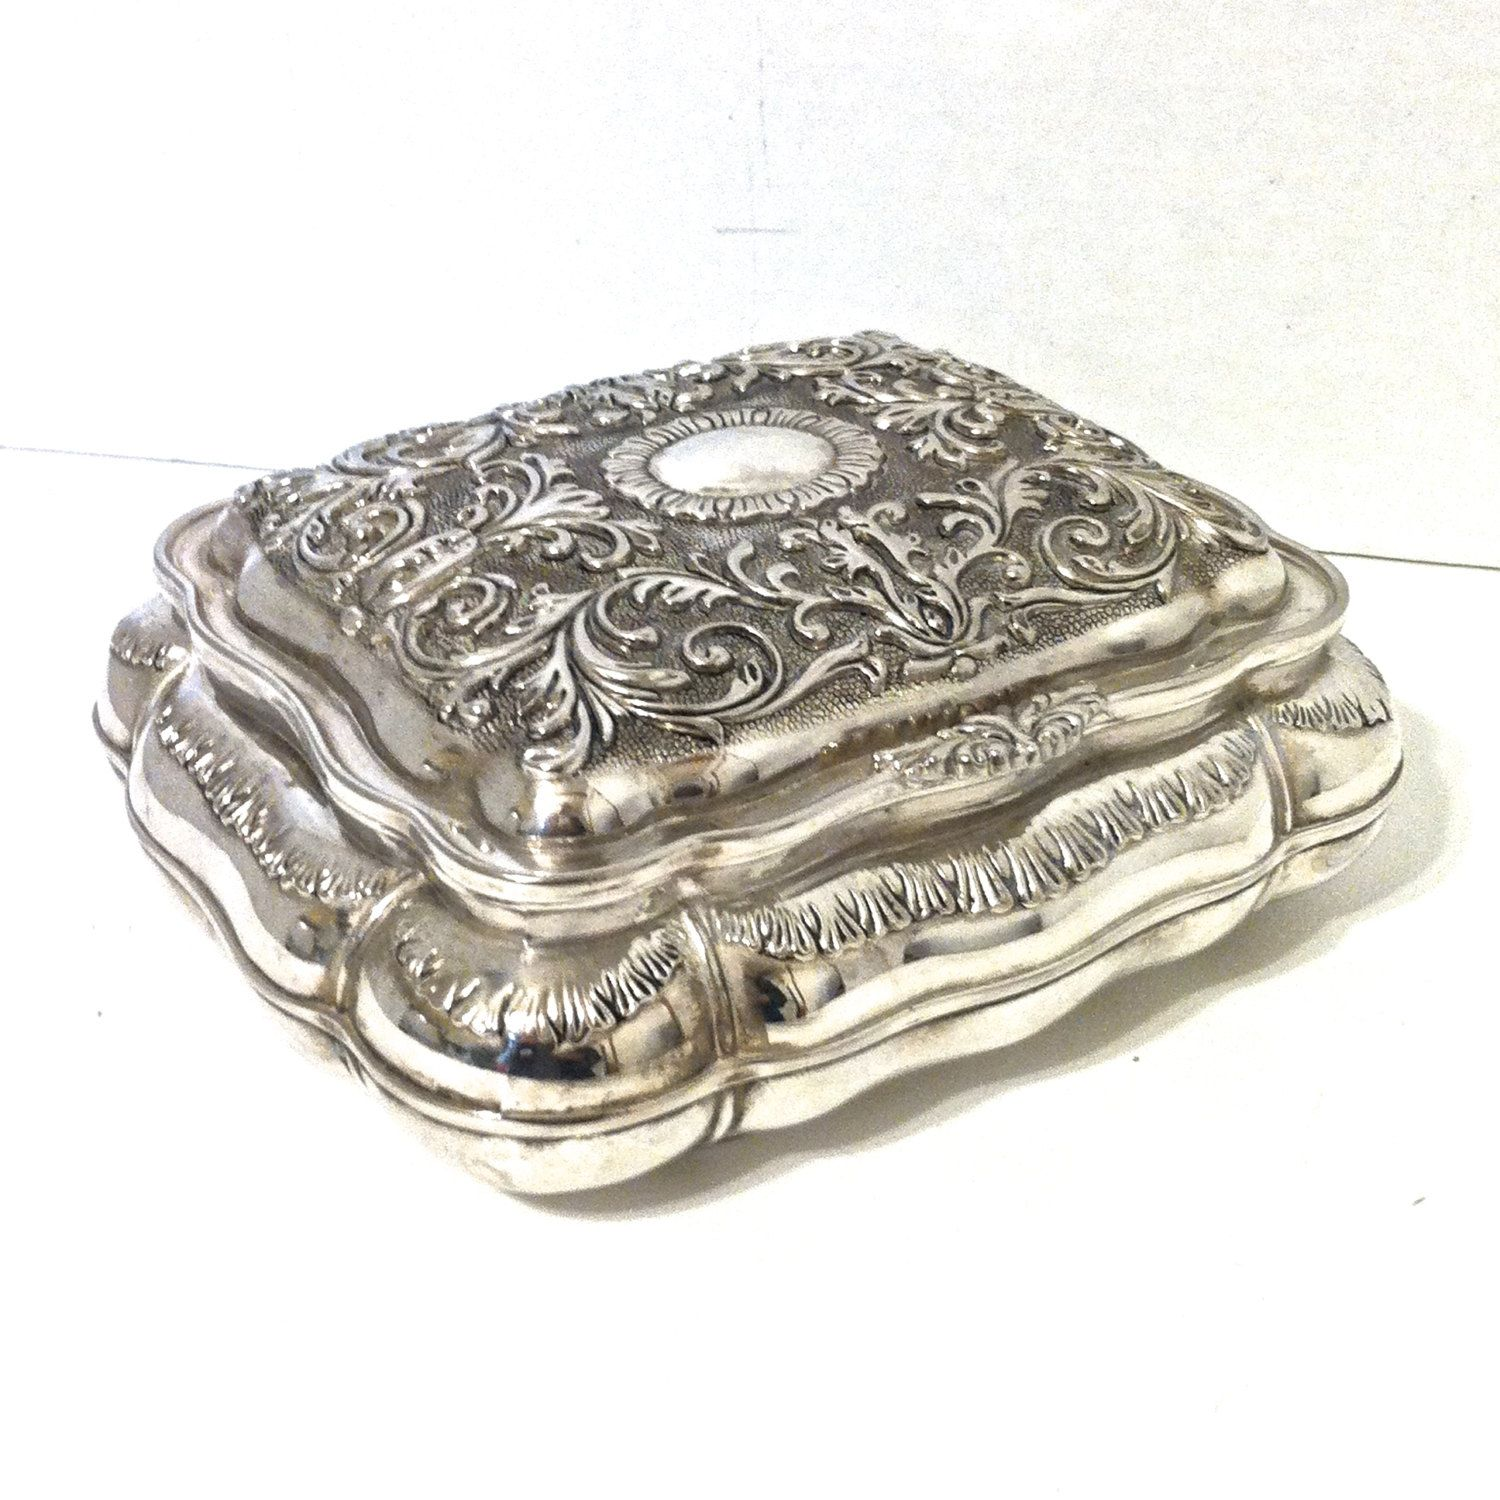 27 VIntage SILVER Plated JEWELRY BOX International Silver Co Silver